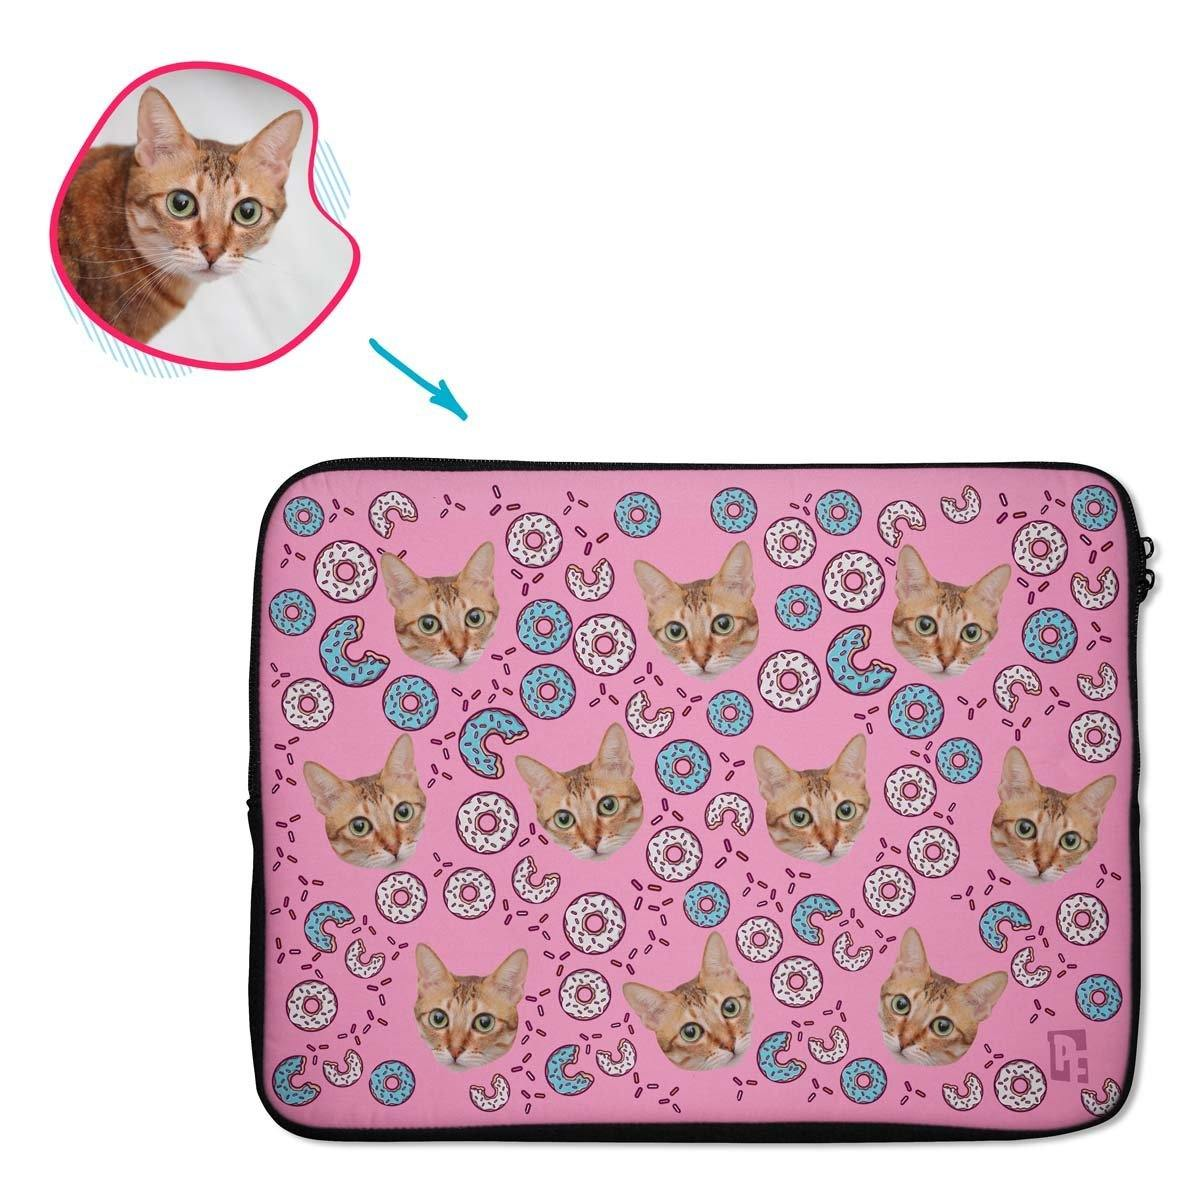 pink Donuts laptop sleeve personalized with photo of face printed on them